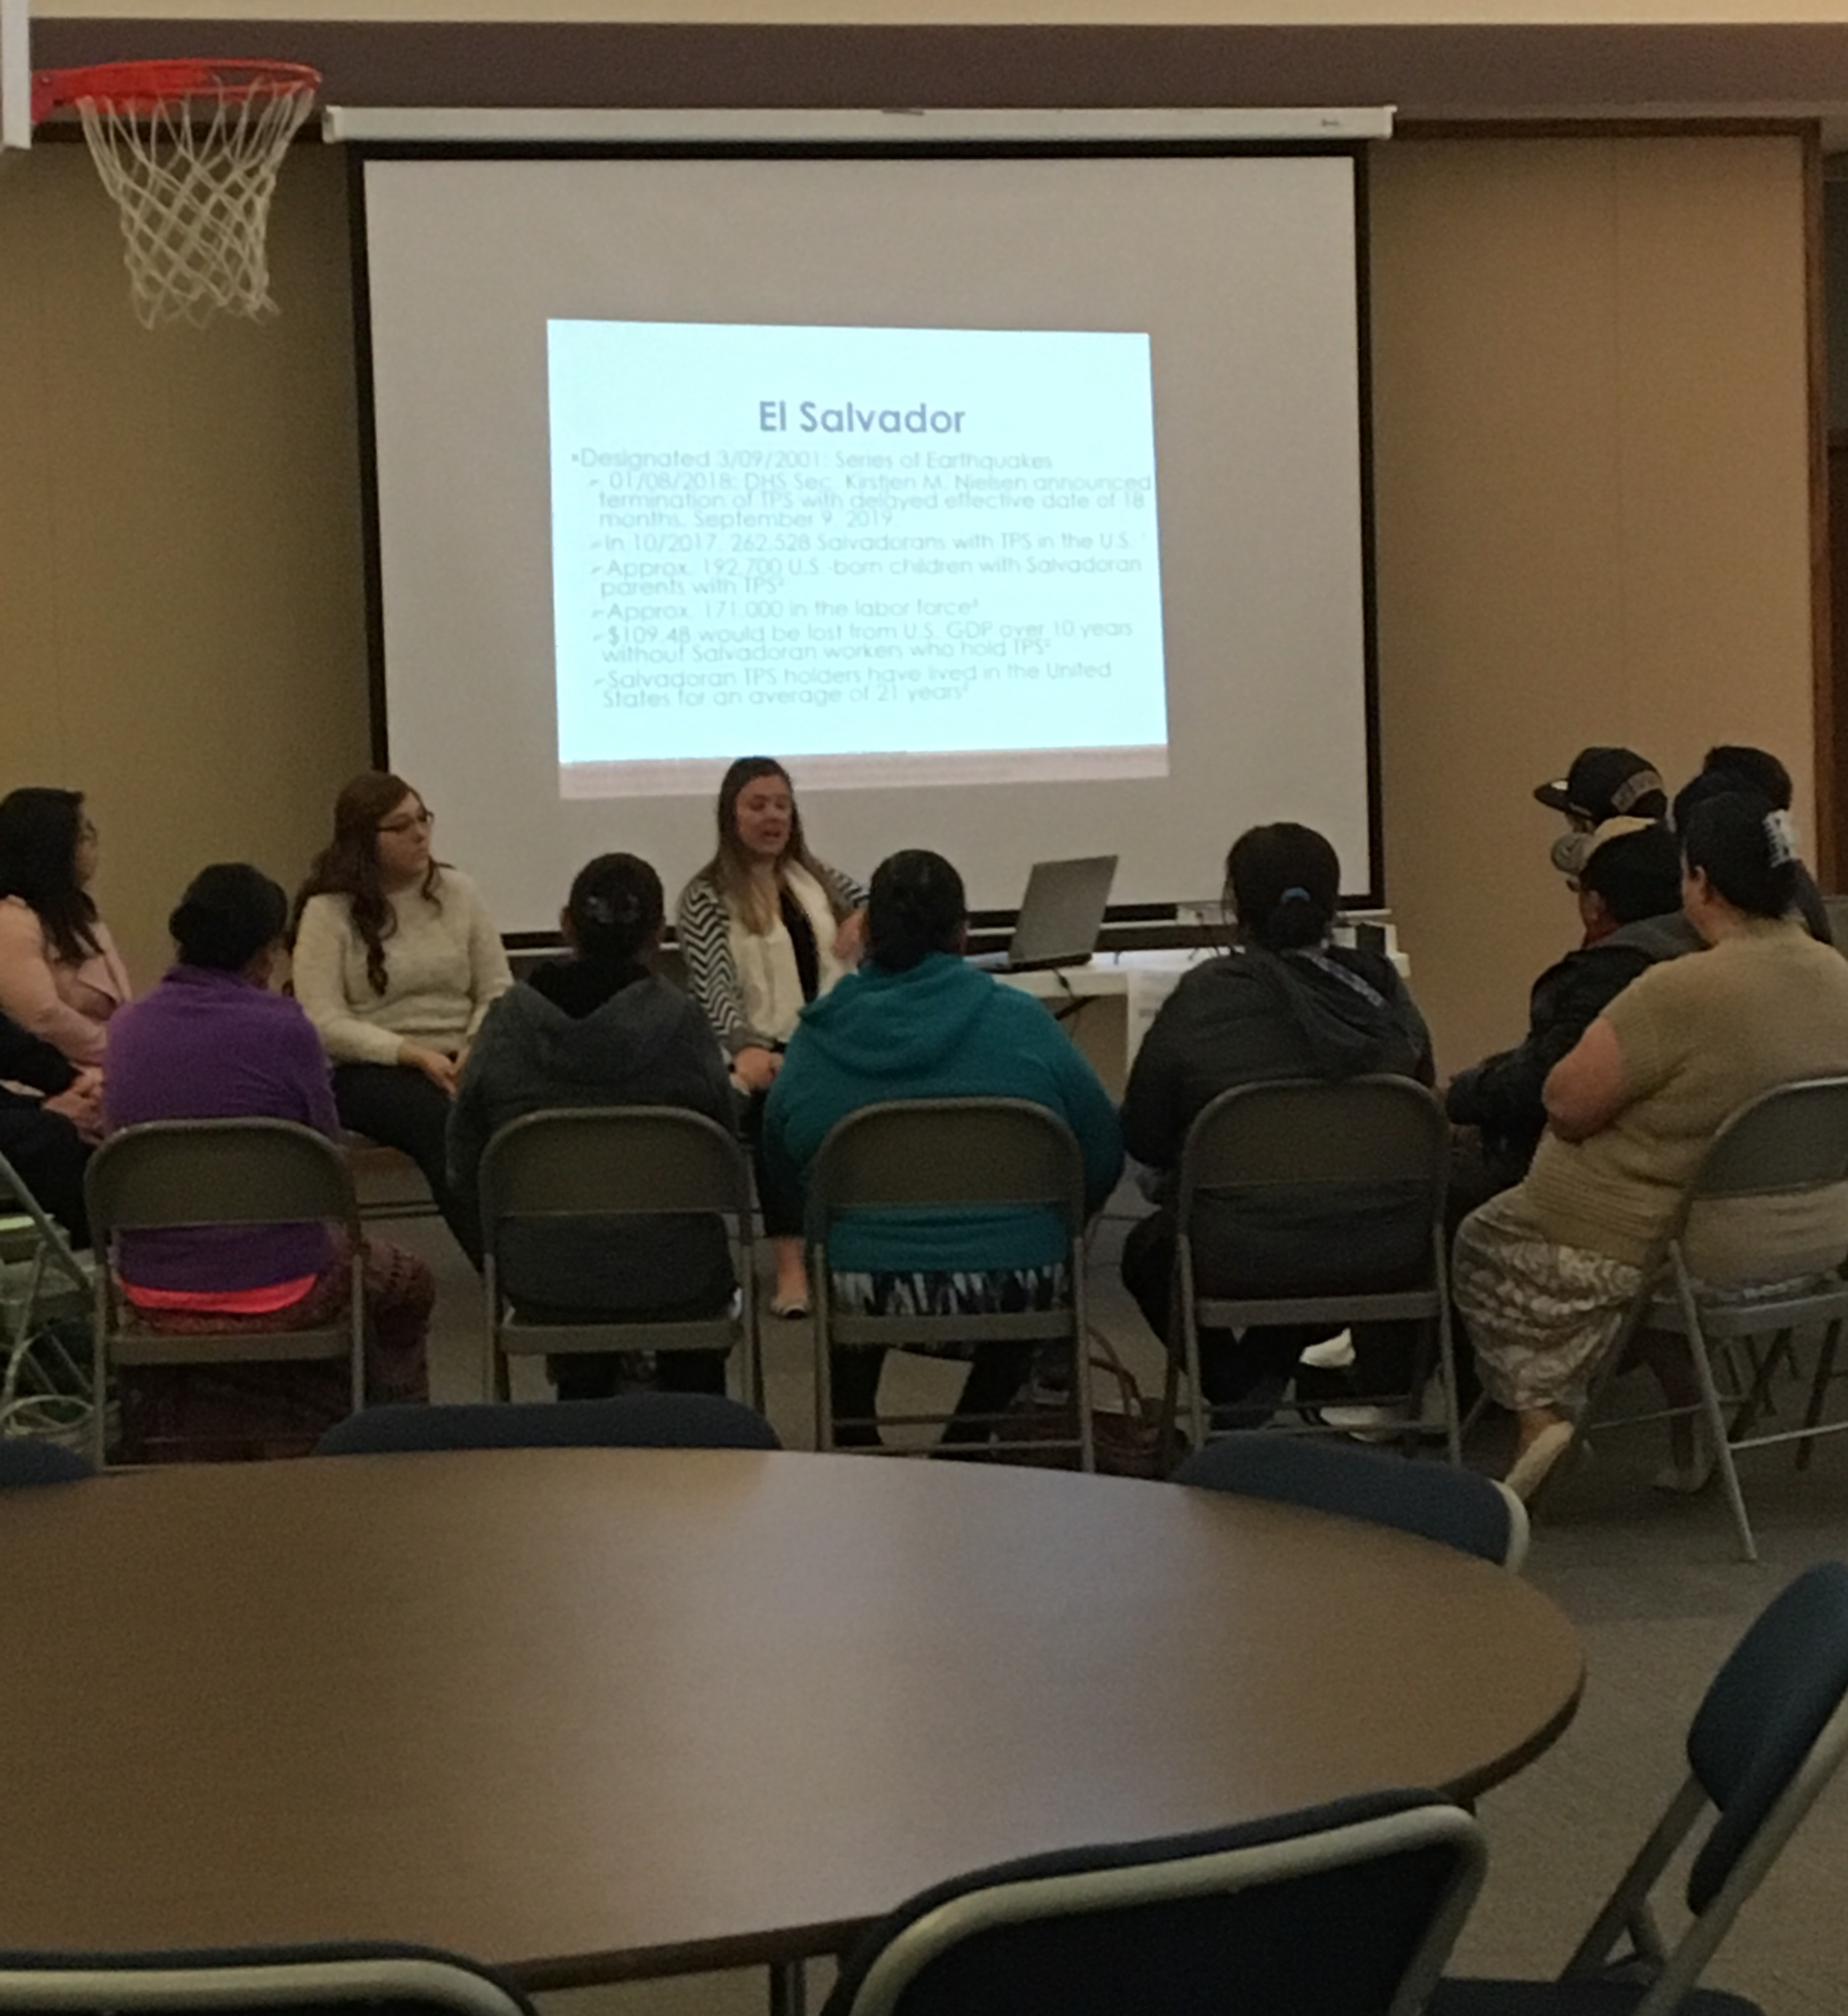 Nebraska Church Reaches Out To Immigrants With Welcome